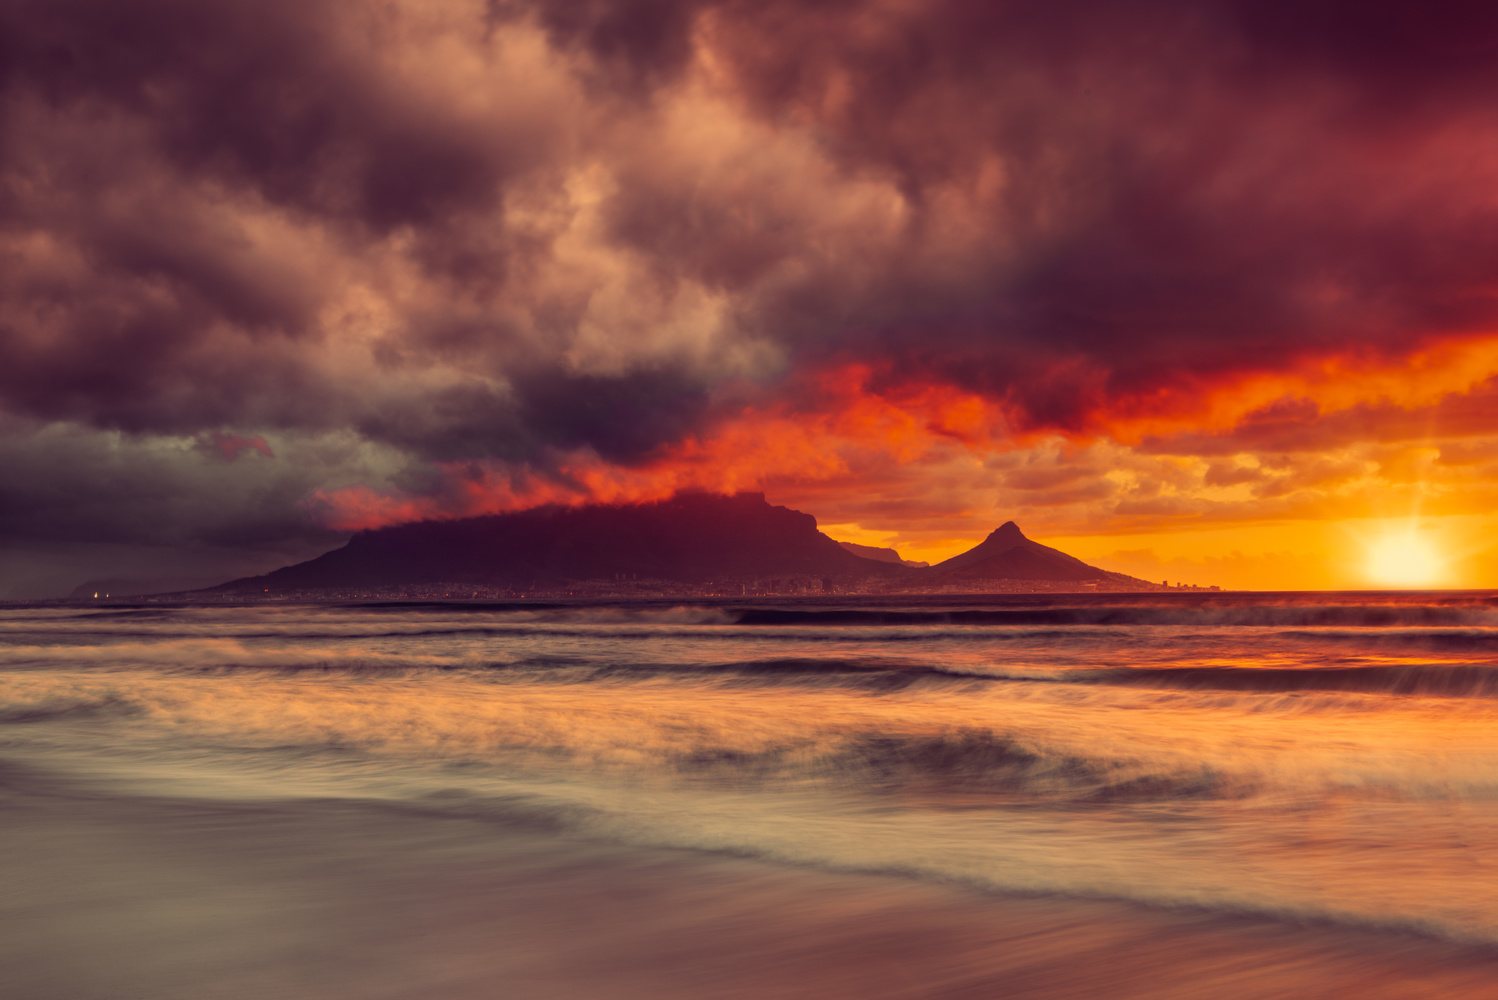 Sunset on Cape Town by Alex Hill